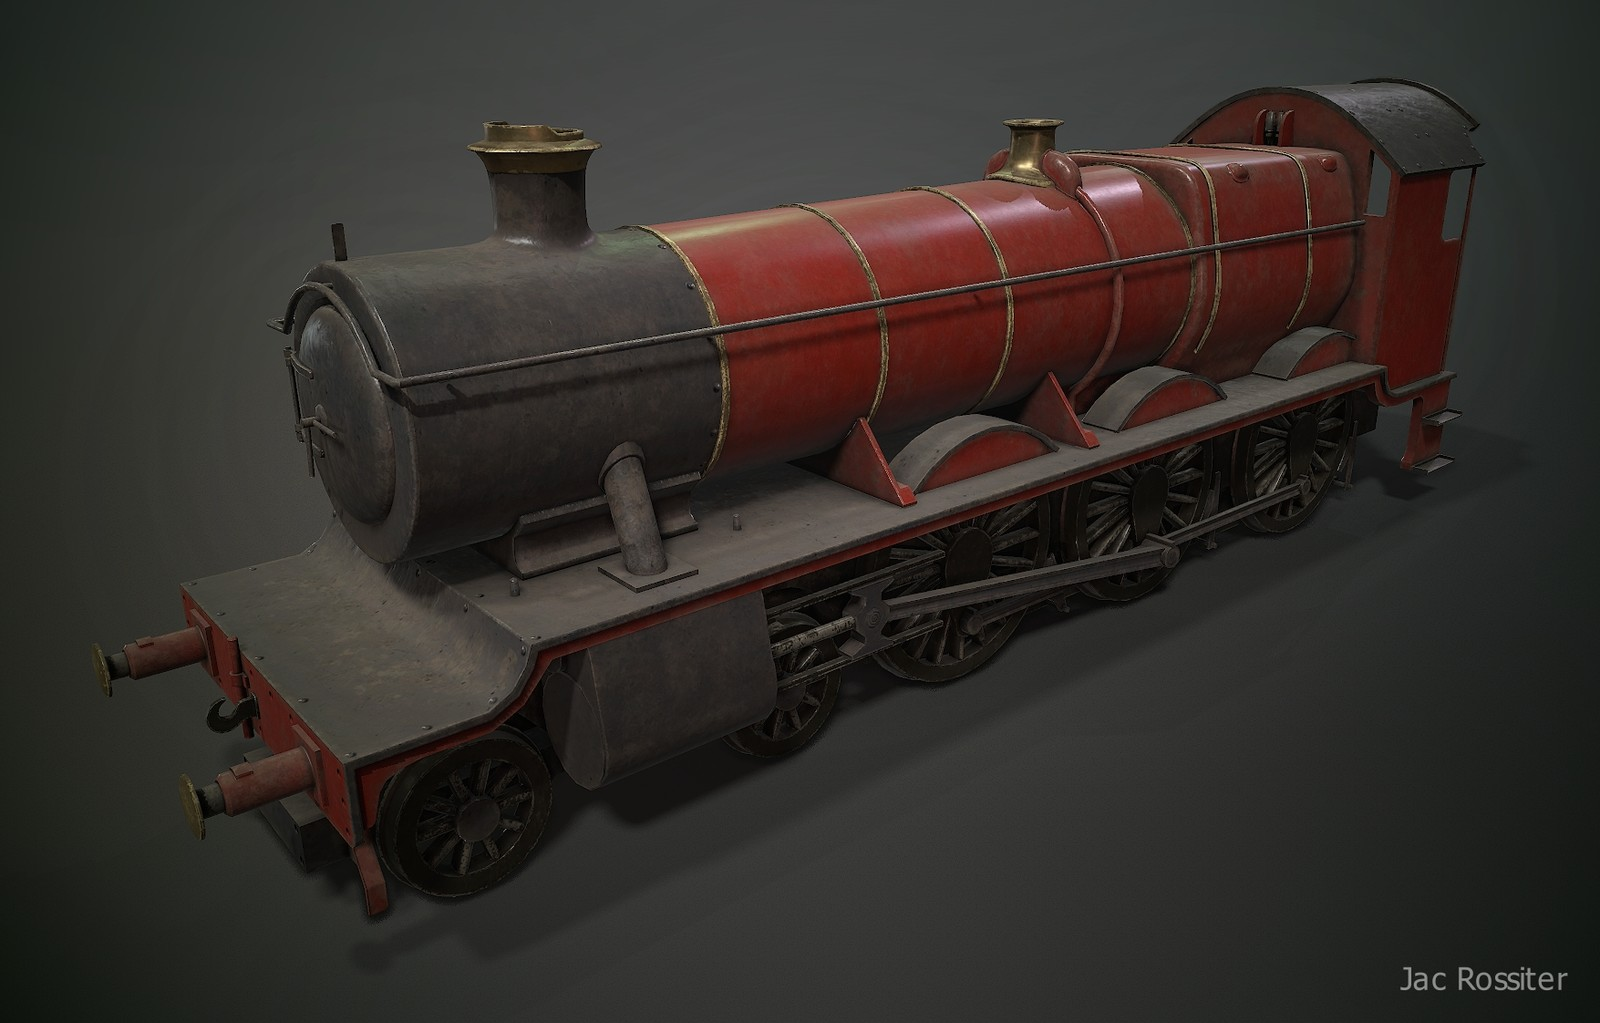 Toy Model Train - Olton Hall Steam Locomotive